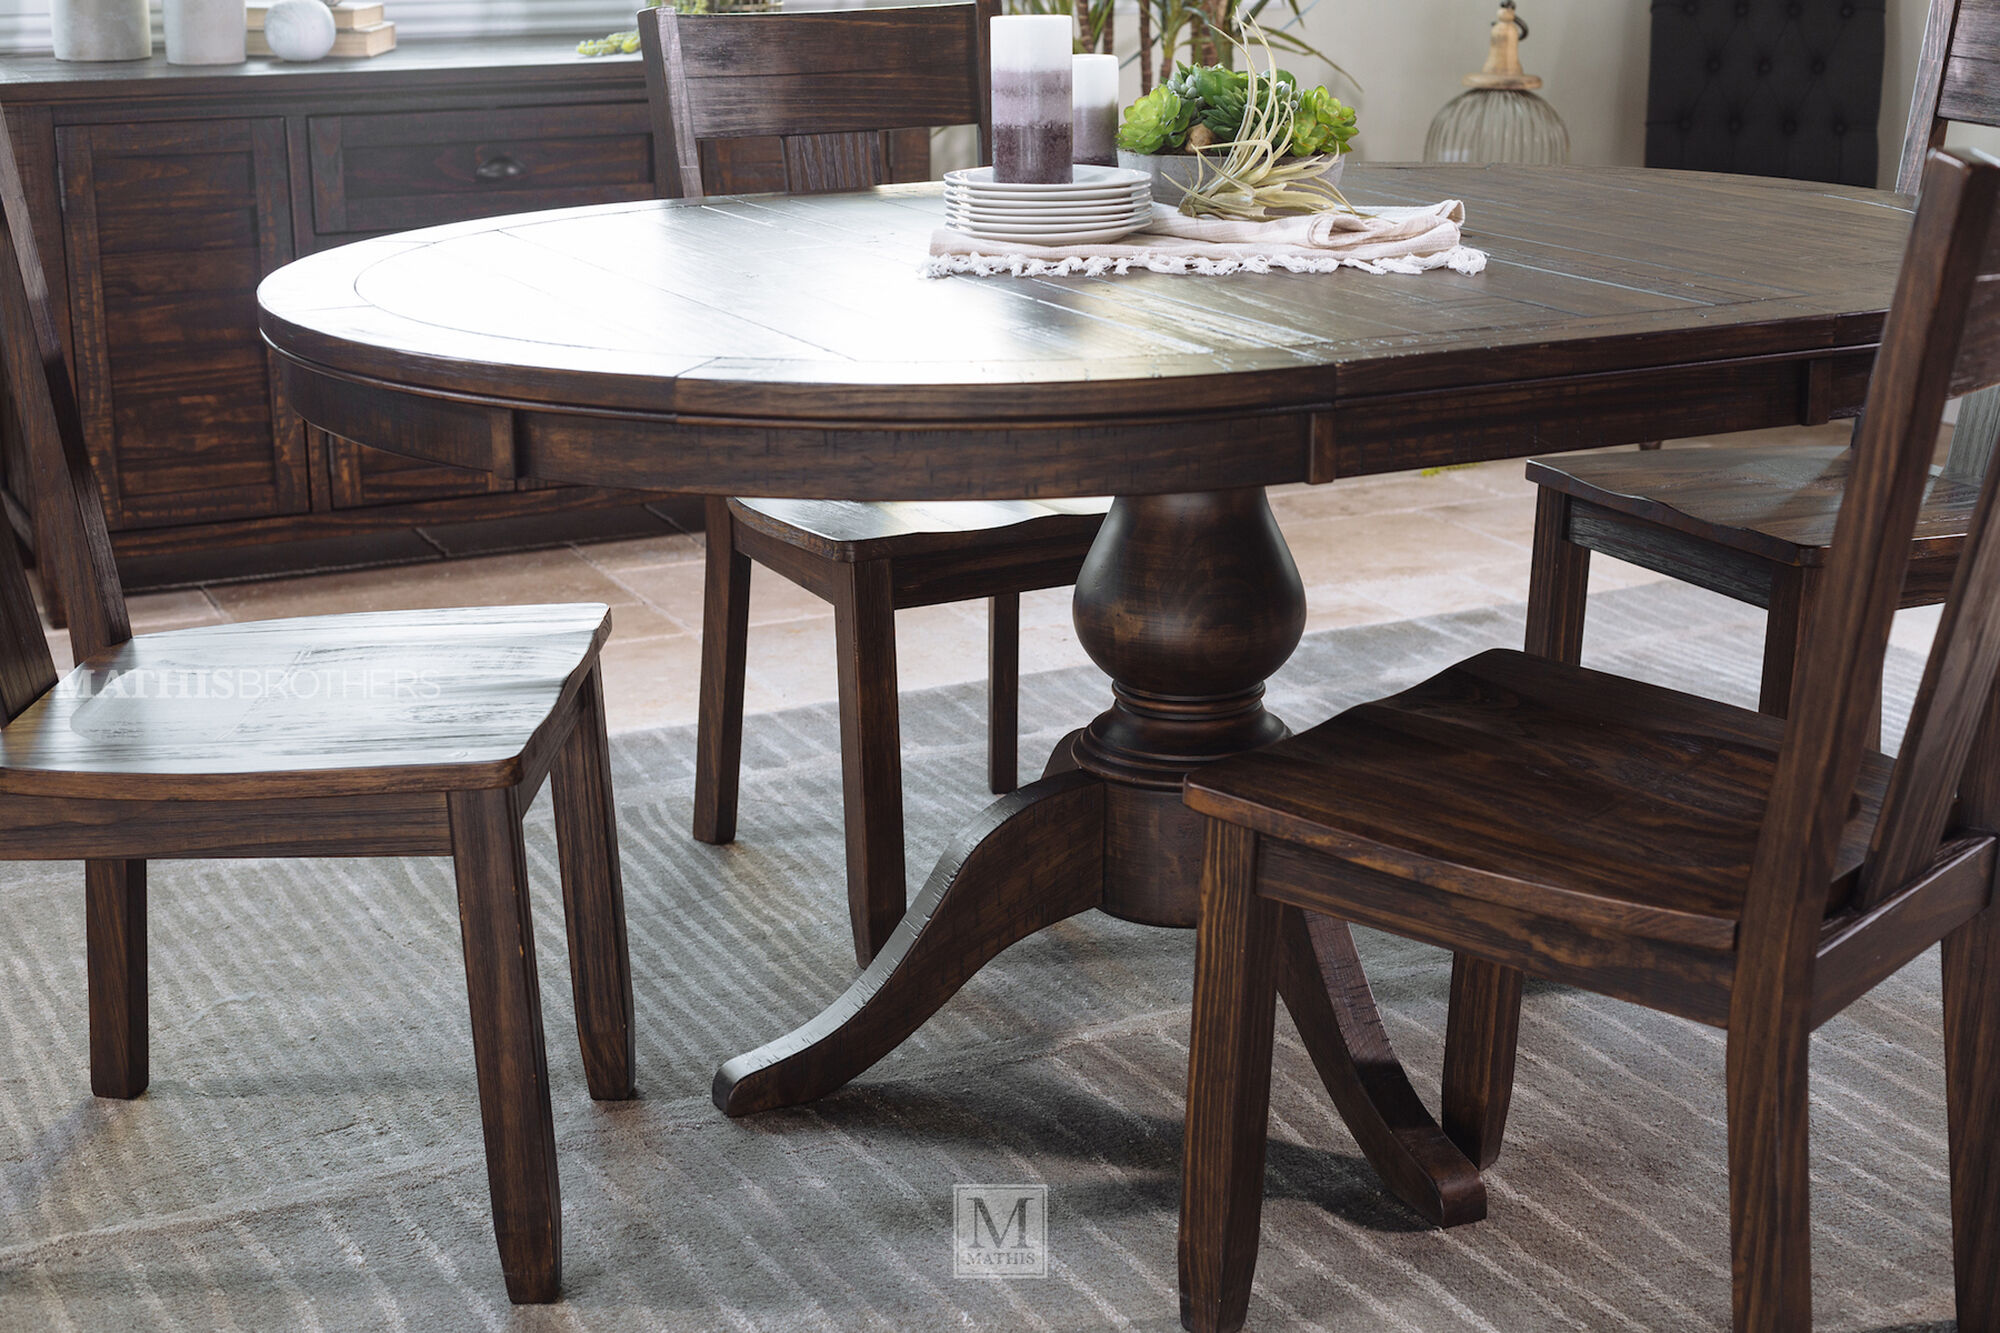 Rustic Farmhouse 48 To 66 Round Solid Pine